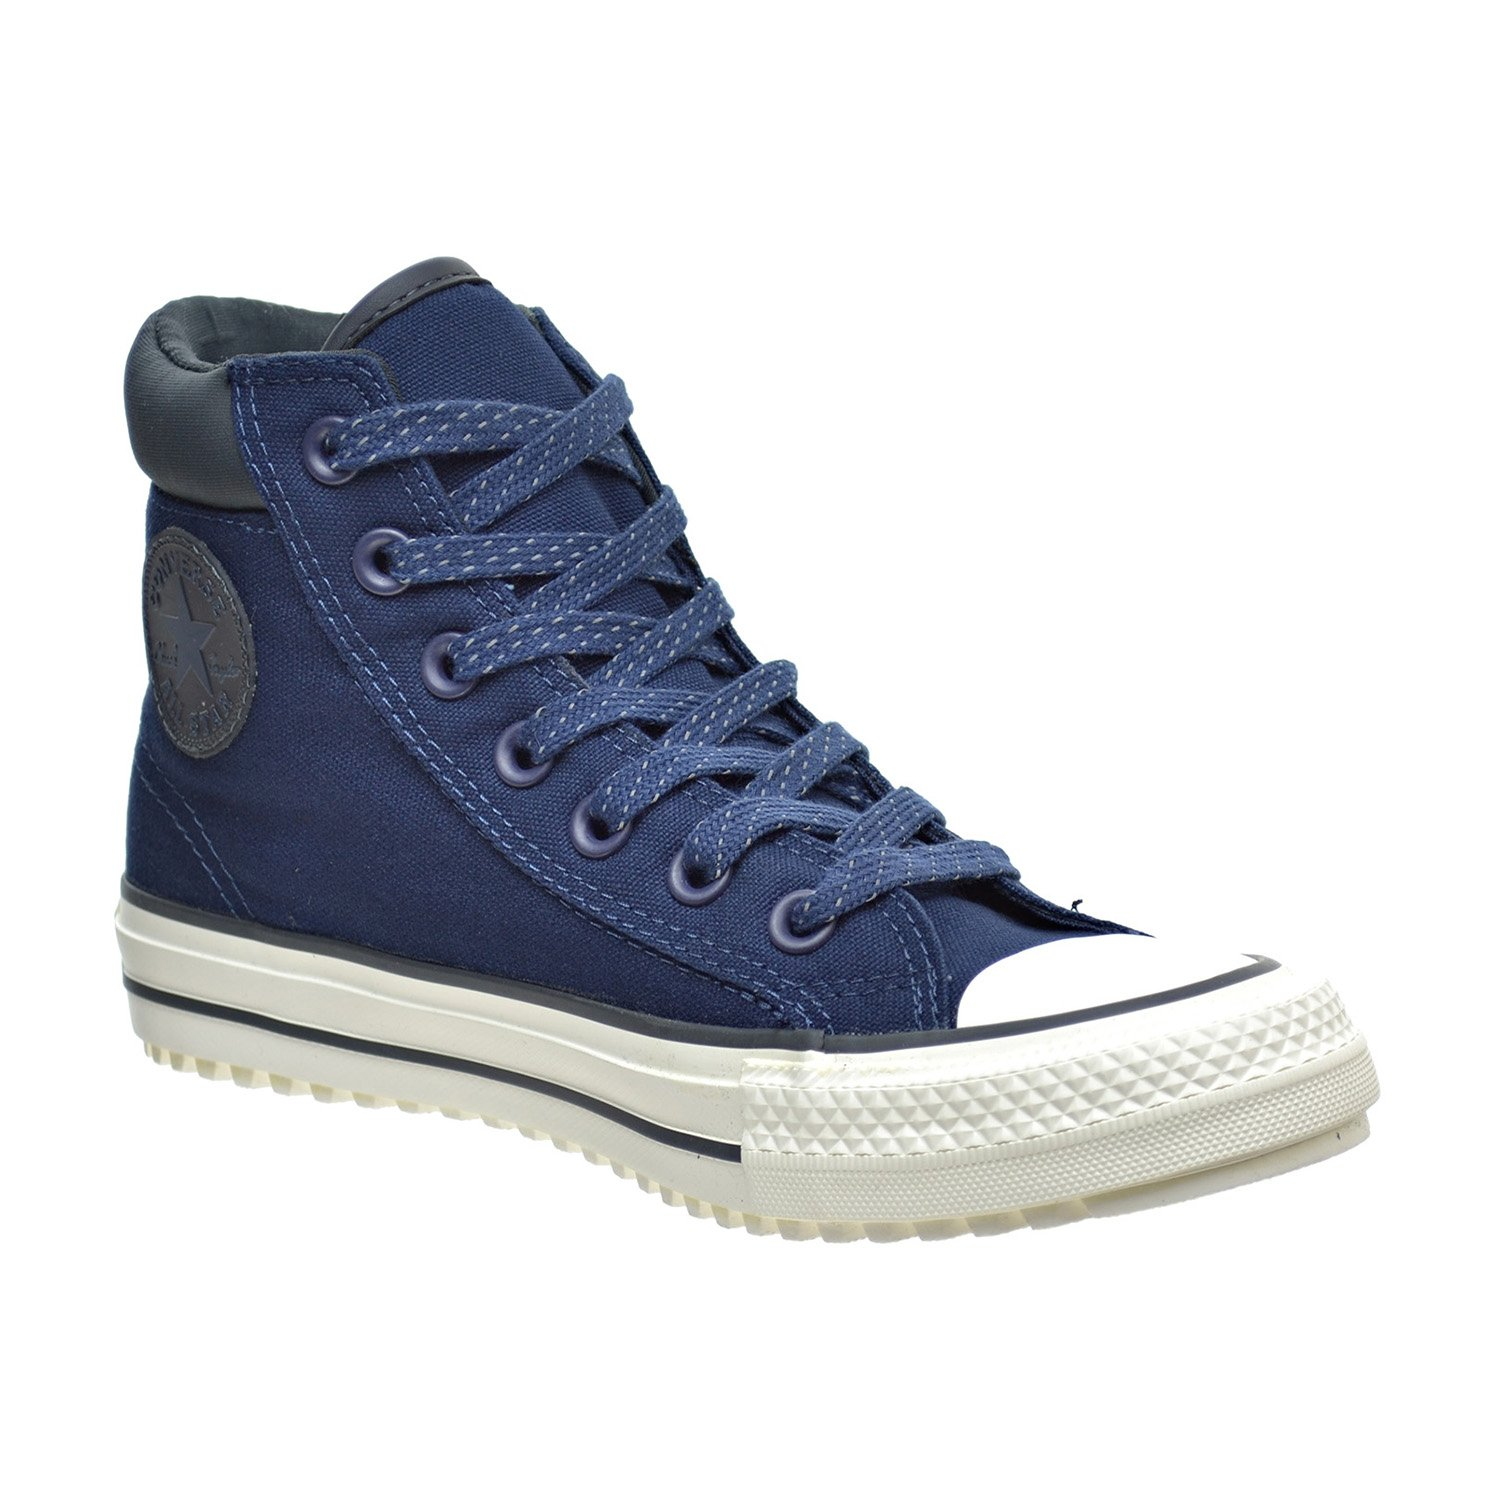 56f39af81135ab Converse Mens Chuck Taylor All Star Boot PC Hi Fashion Sneaker Boot Shoe